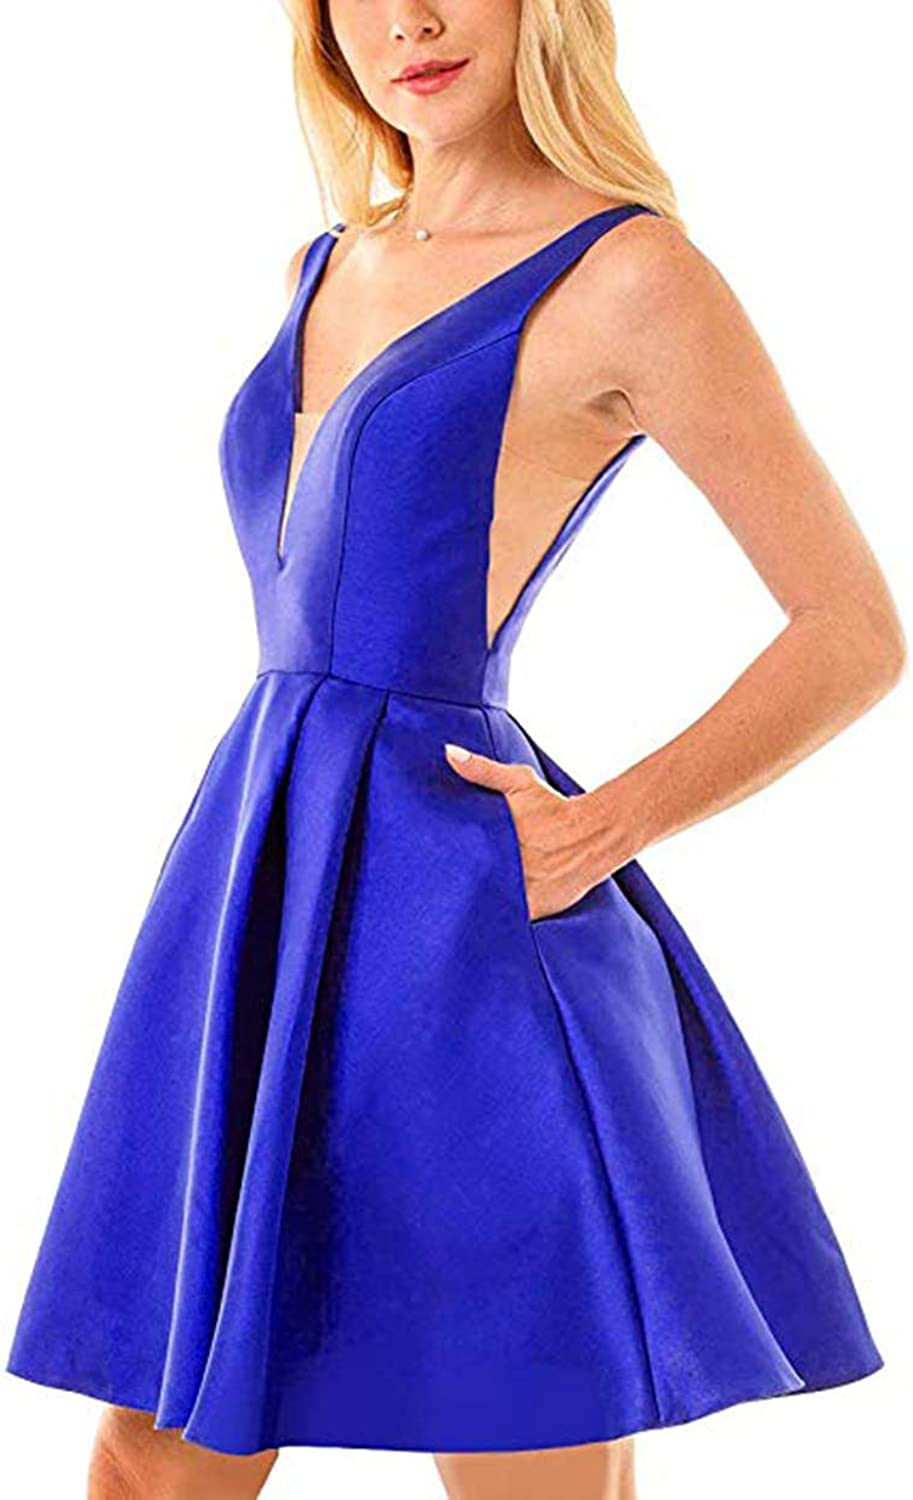 JiusTan Sexy V Neck Satin Prom Dresses 2019 Short Homecoming Dresses Formal Party Gowns for Women with Pockets